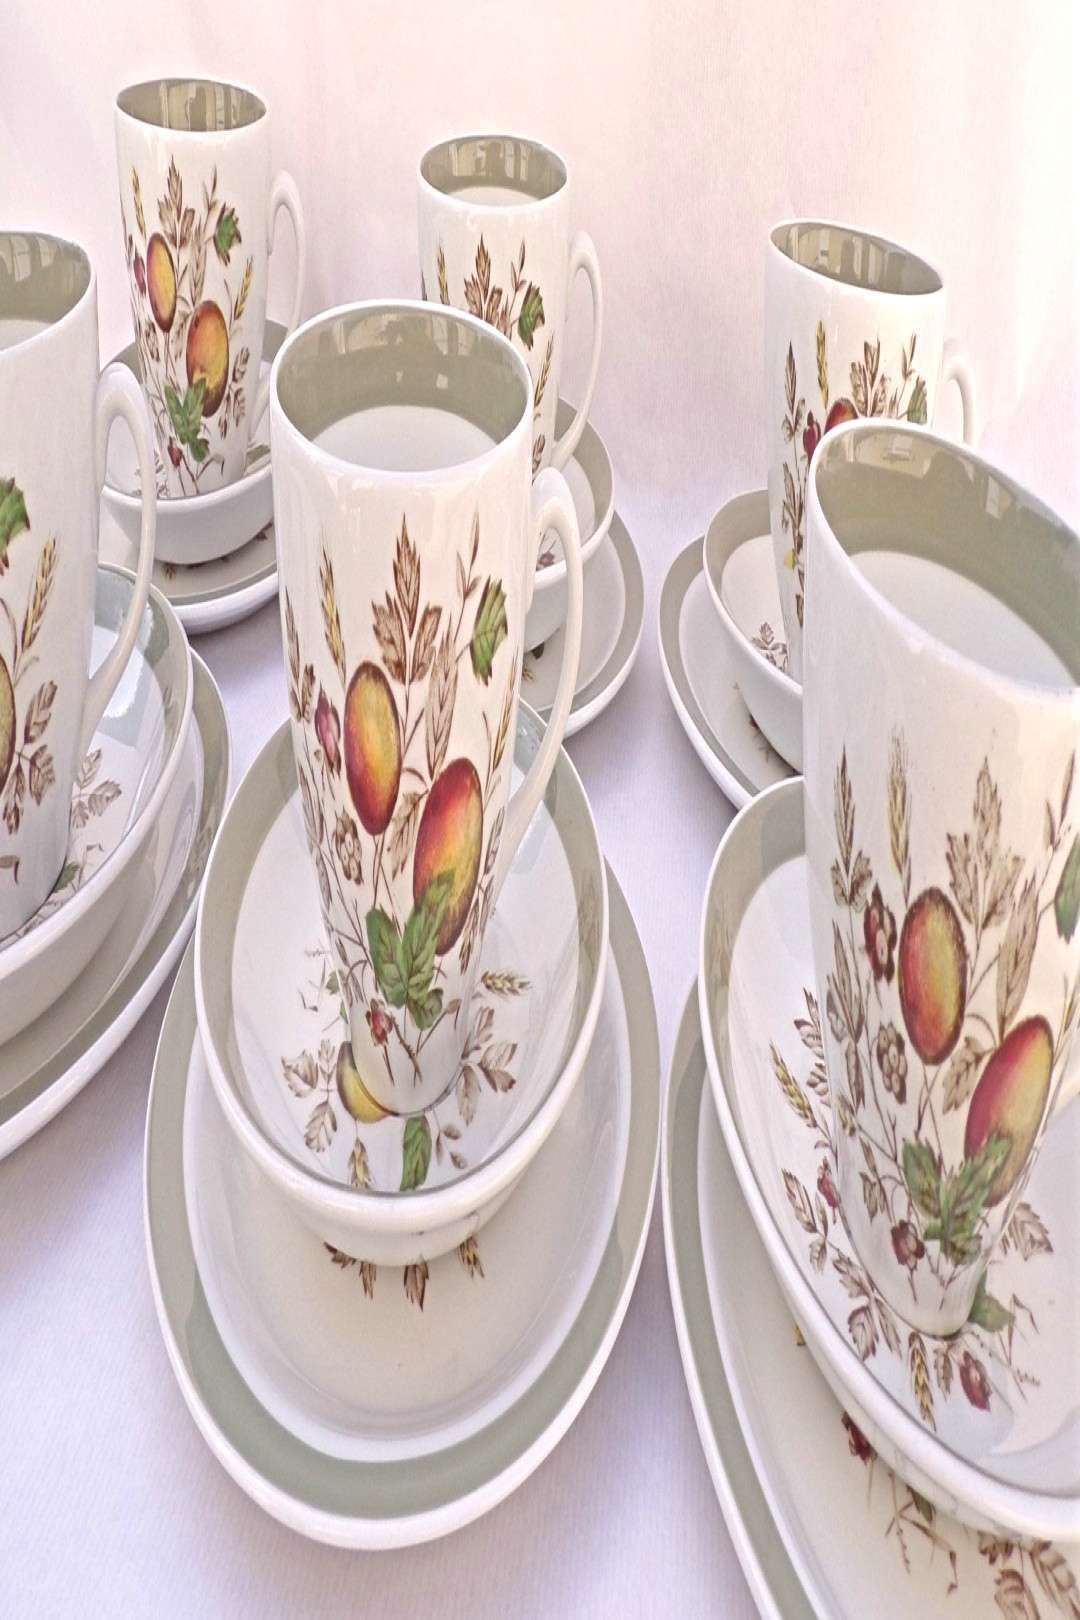 #porcelaine #tableware #porcelain #anglaise #teacups #vintage #england #meakin #alfred #dishes #made #trio #set #in #of Vintage ...